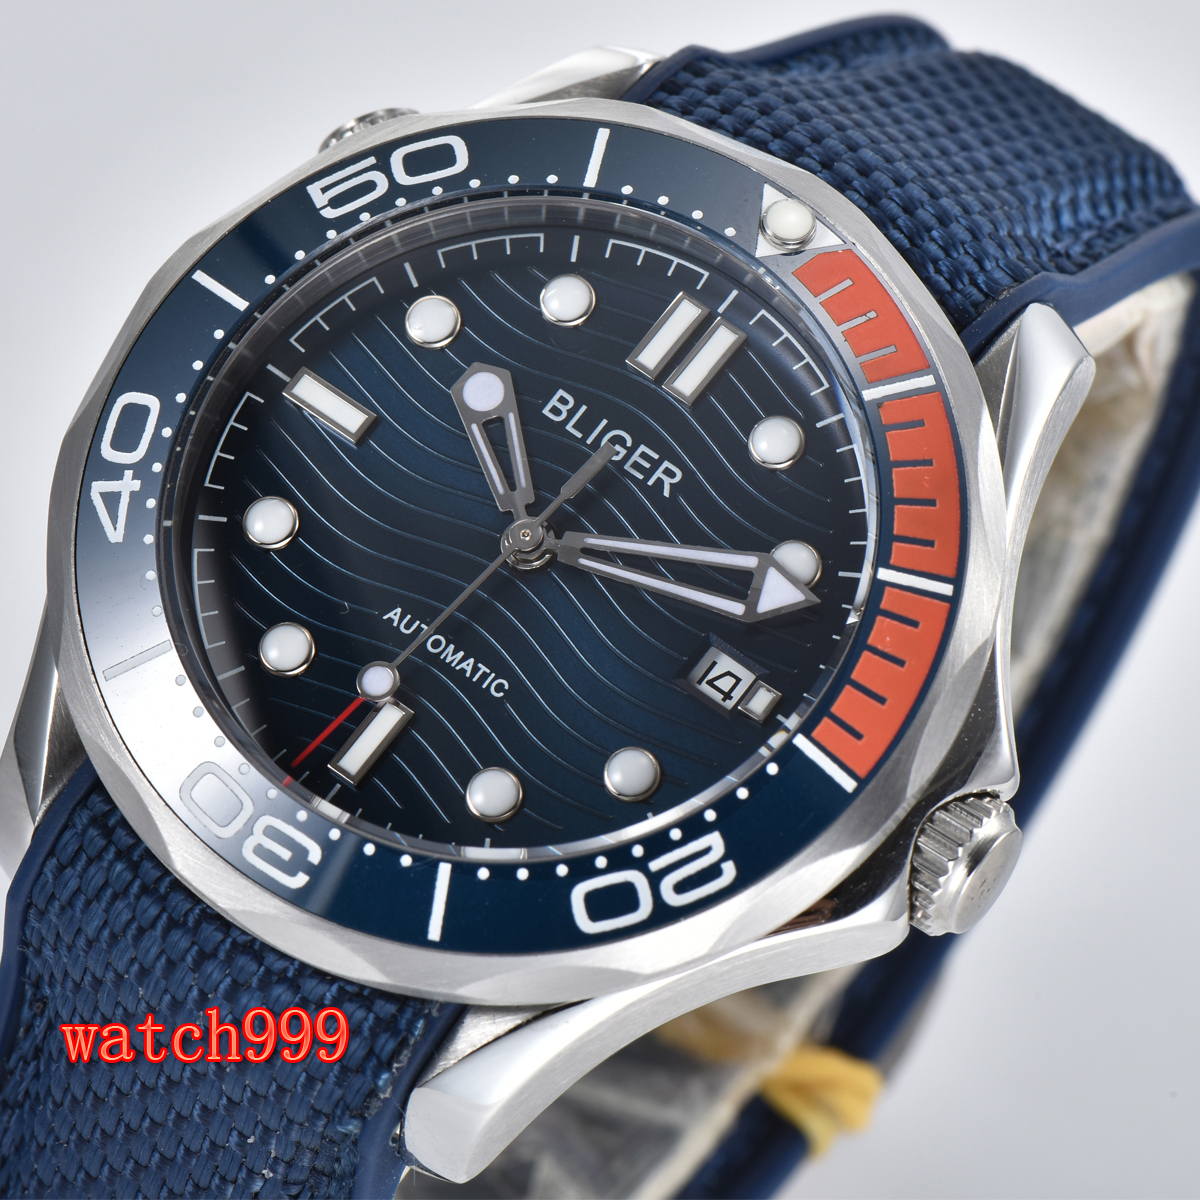 41mm bliger blue dial sapphire glass date ceramic bezel automatic men's casual watch waterproof mechanical watch